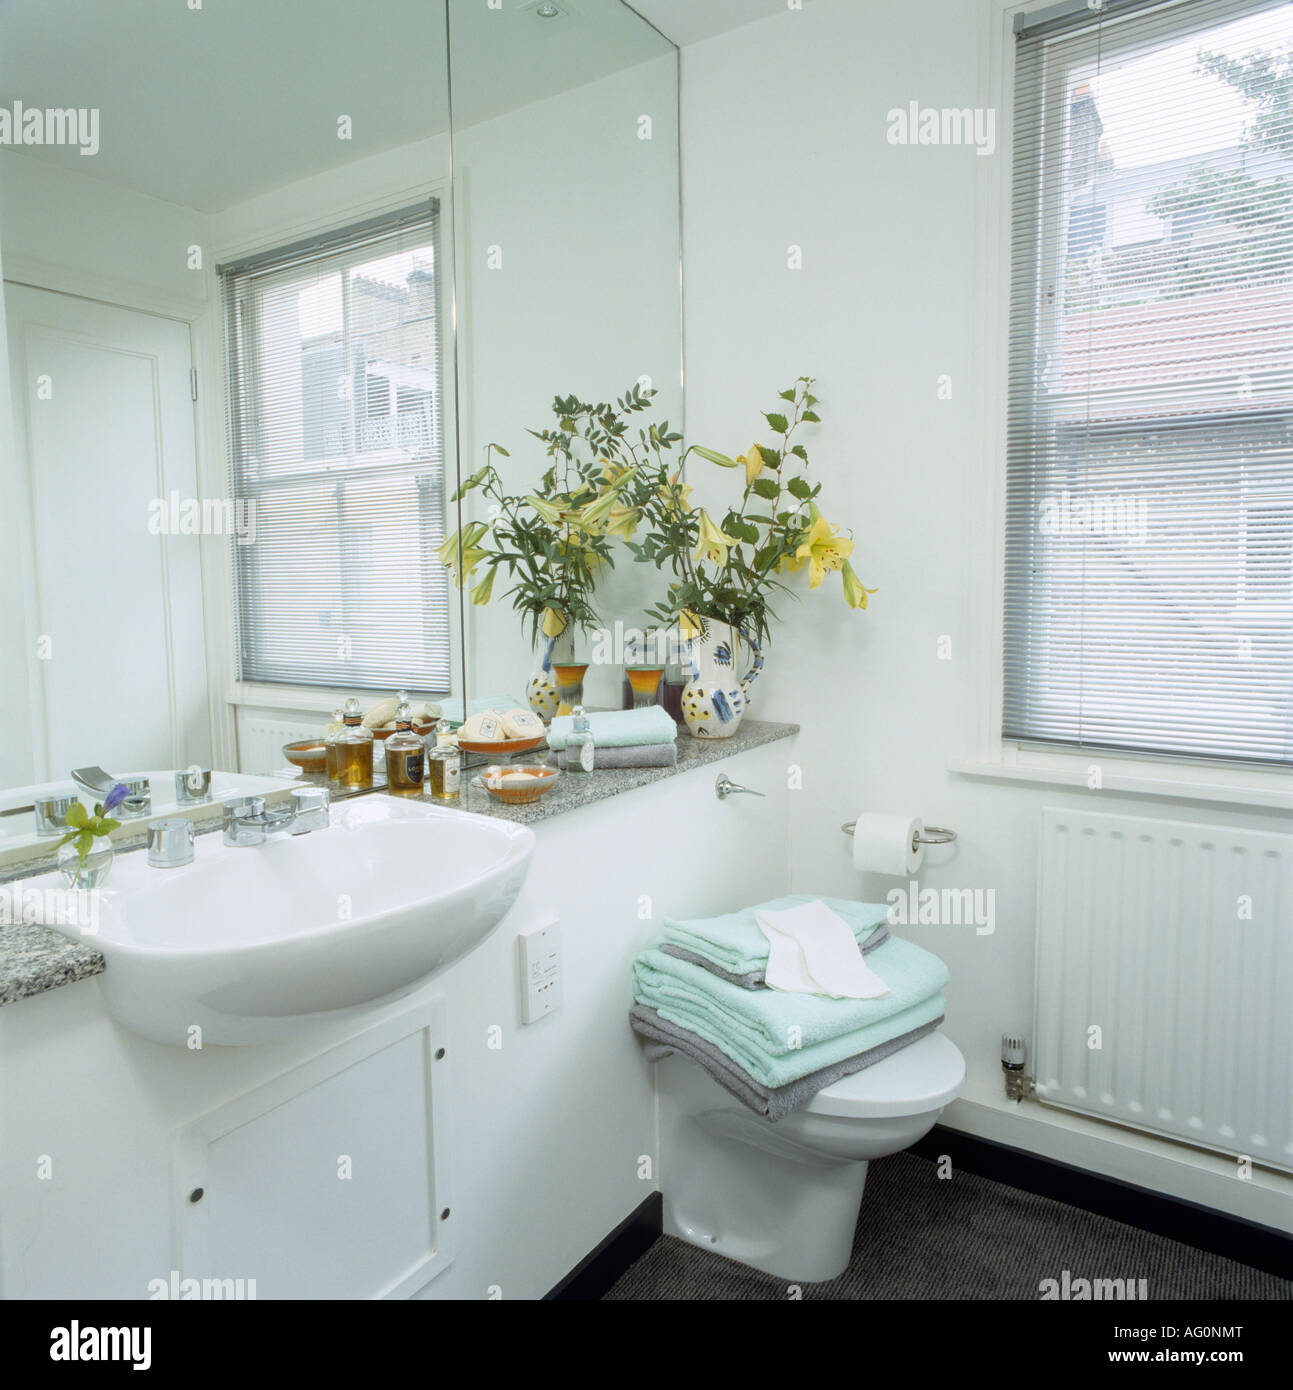 Mirrored Wall Above Basin Built Into Vanity Unit In White Bathroom With  Turquoise Towels On Toilet